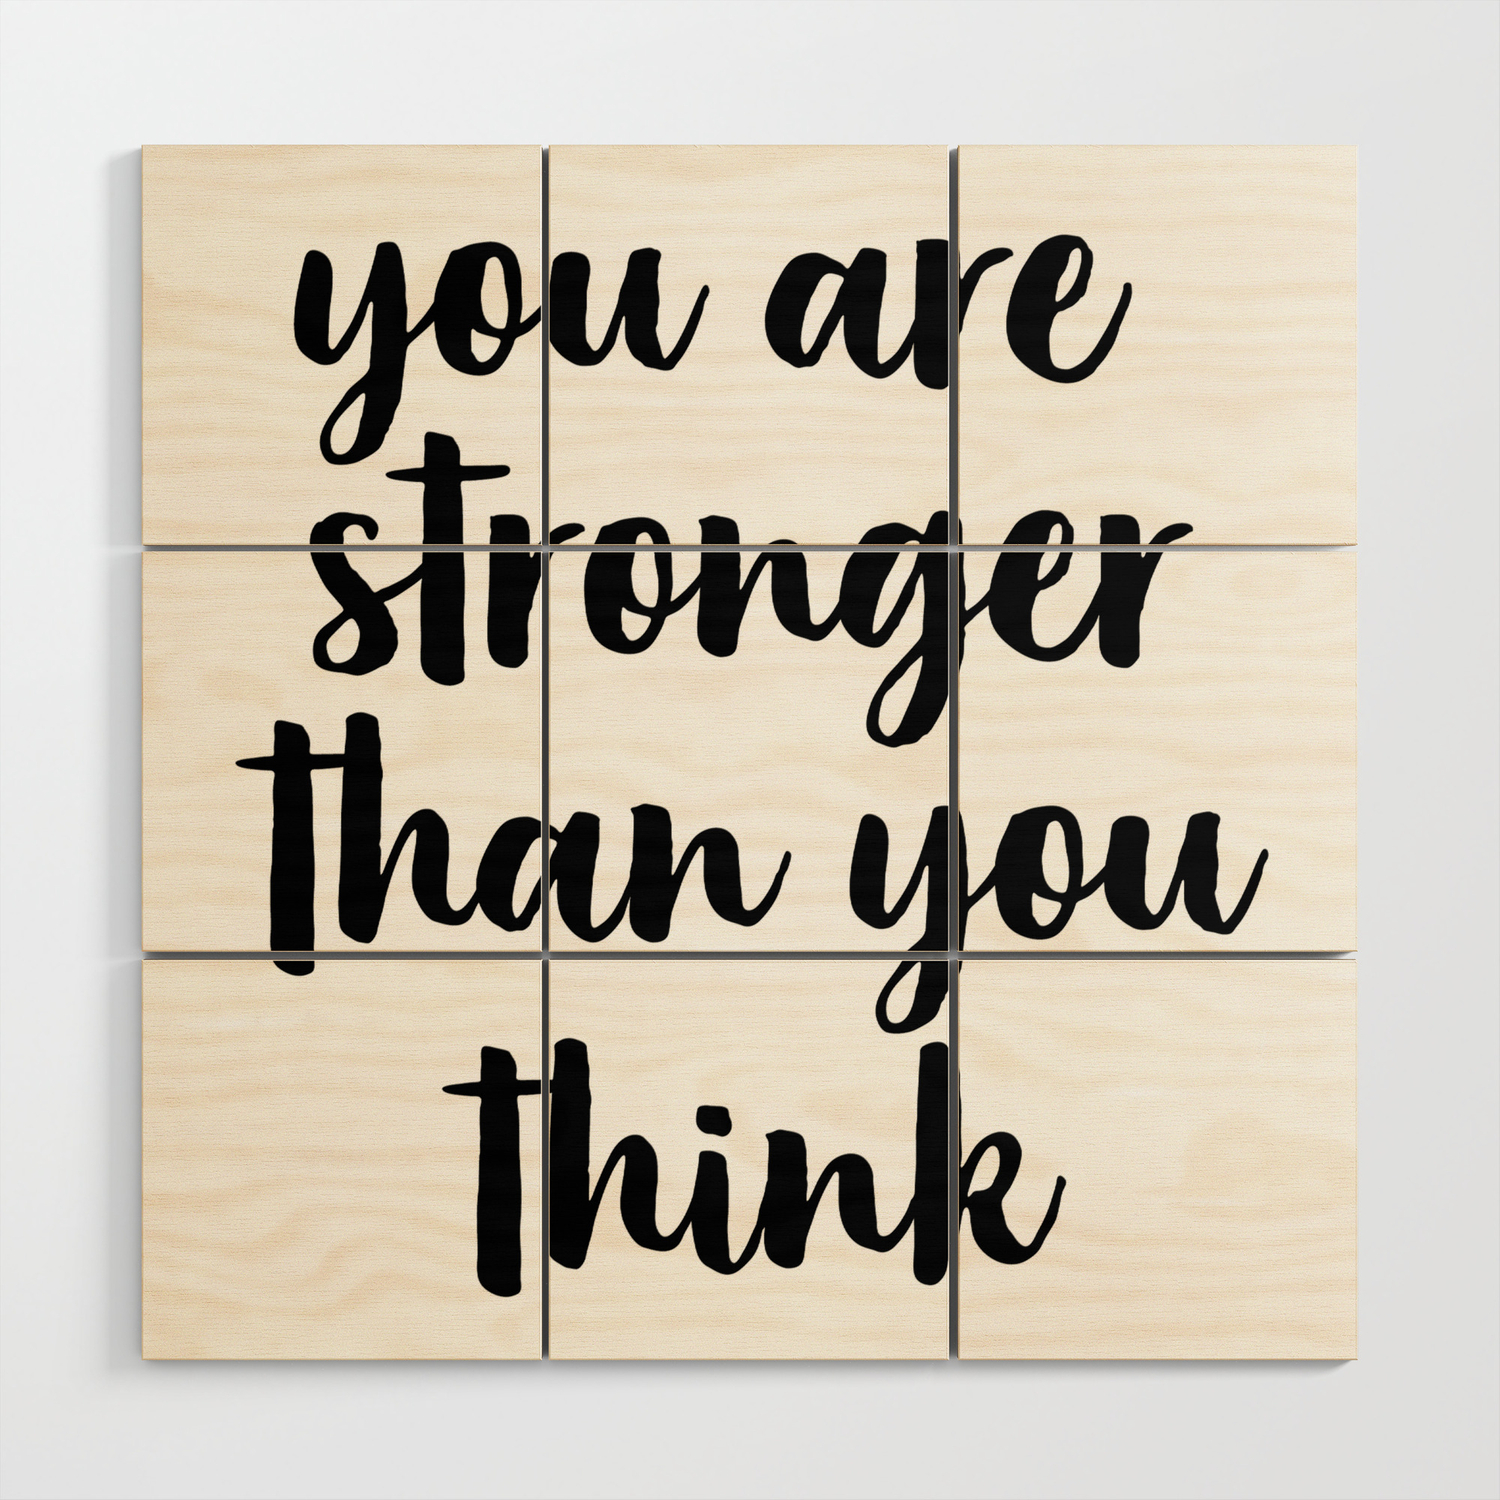 You Are Stronger Than You Think Motivational Quote Inspirational Quote Typographic Art Inspiring Wood Wall Art By Artbynikola